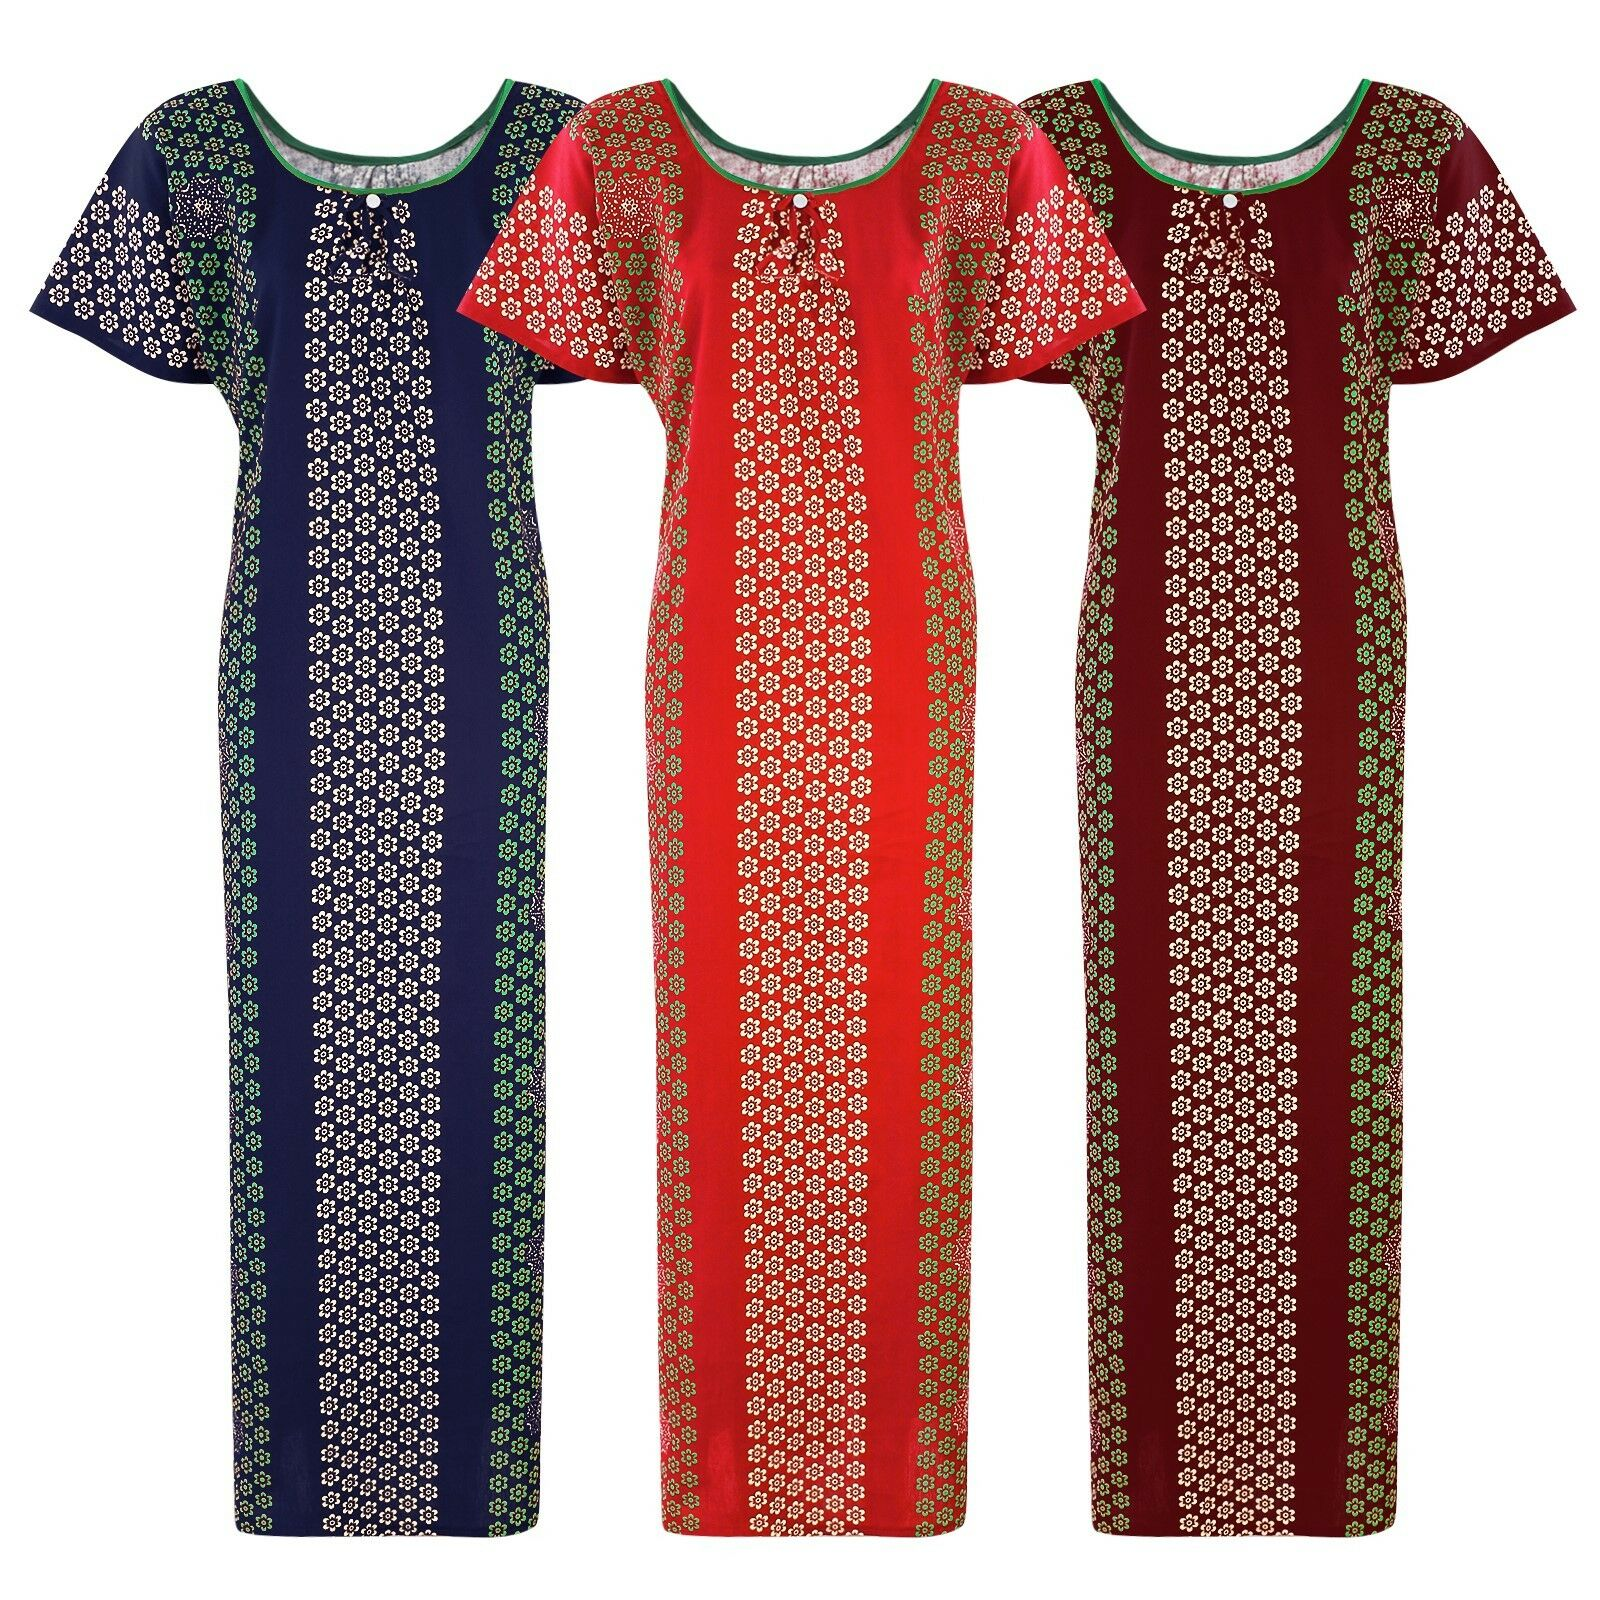 Color: Deep Red, Navy, Red Cotton Kaftan Nightdress Size: L (10-16)